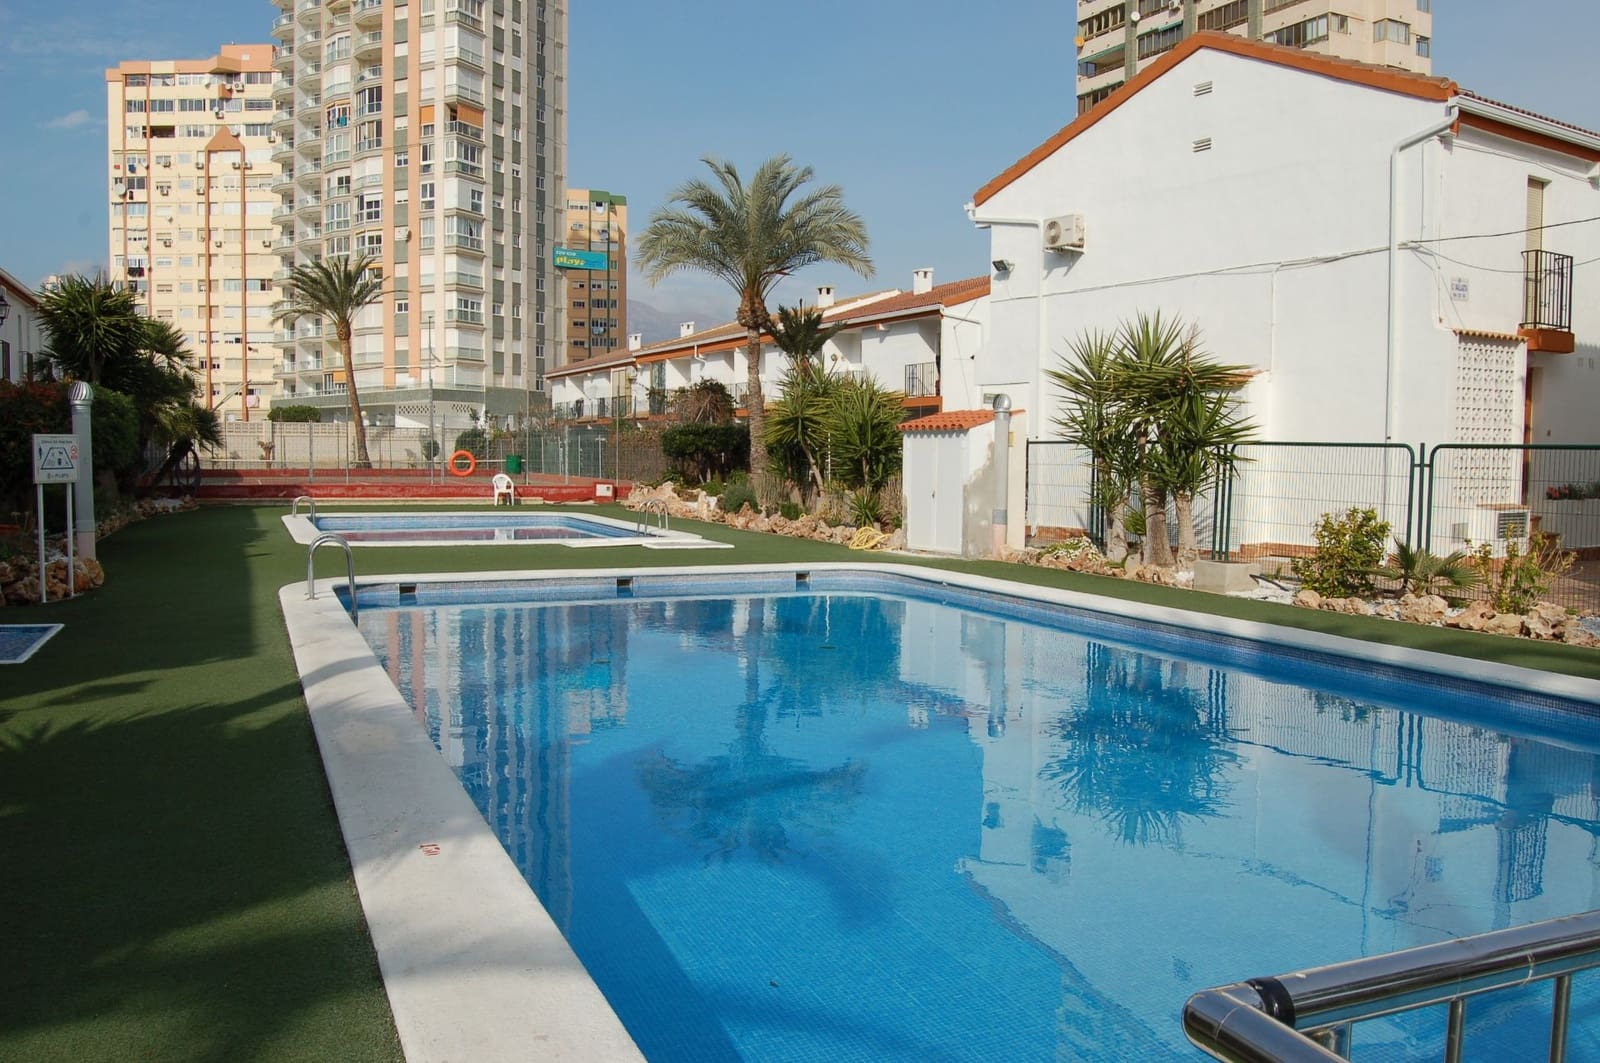 2 bedroom Townhouse for sale in Benidorm with pool - € 130,000 (Ref: 3154246)